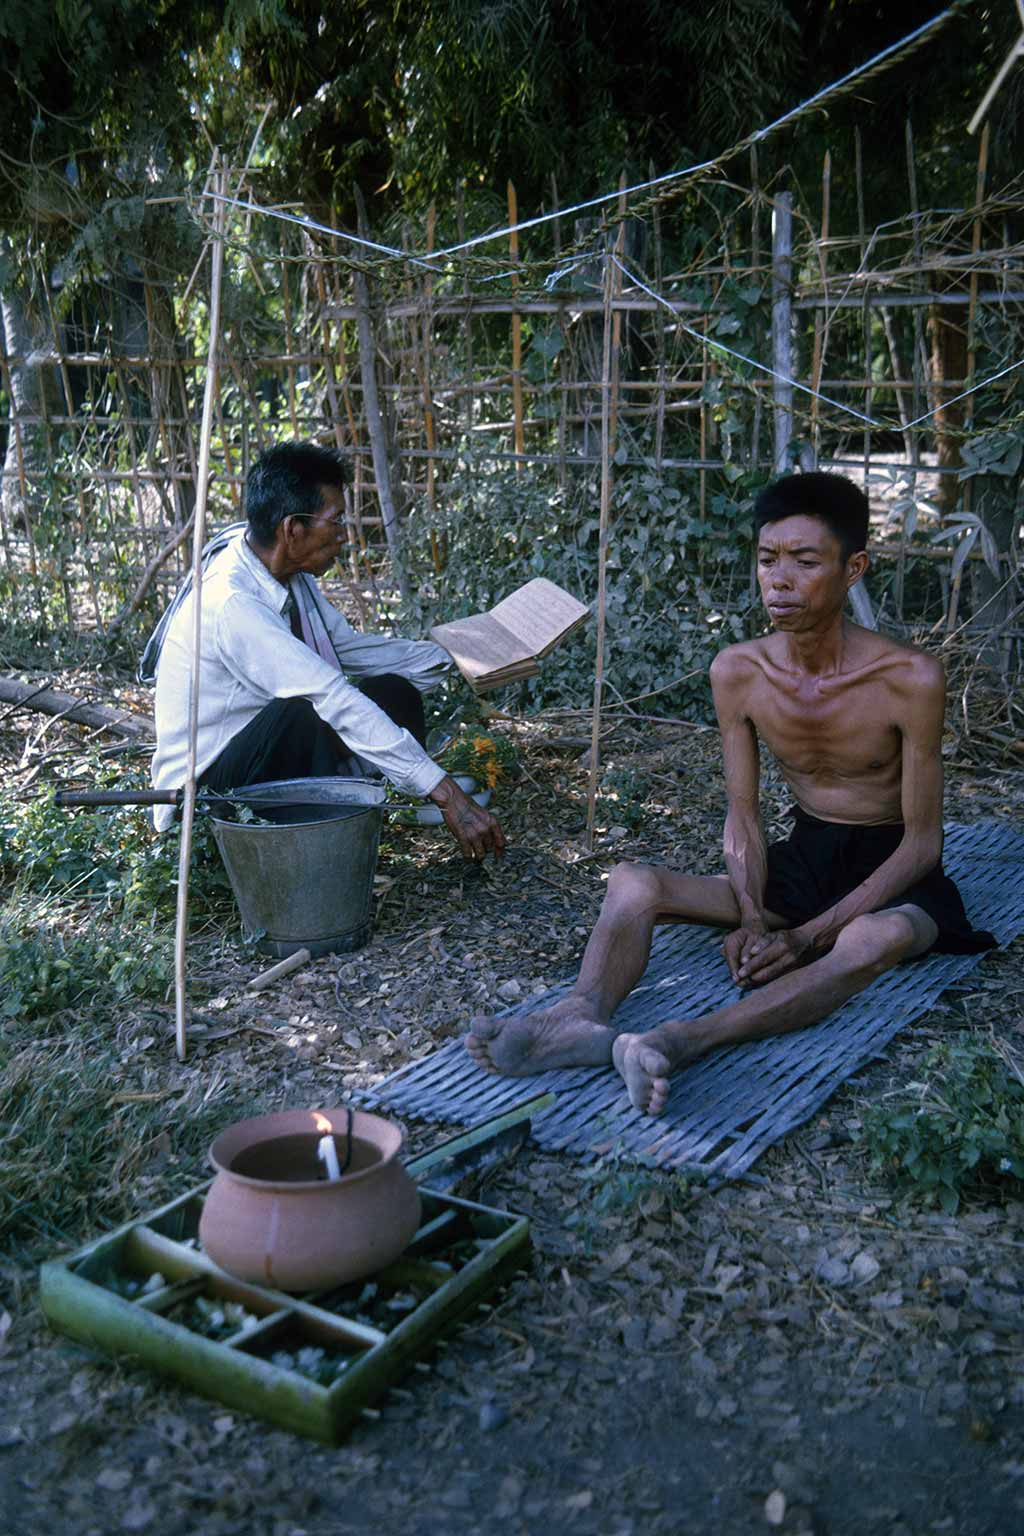 a man in a white shirt reads to a sick man seated outdoors in front of a candle